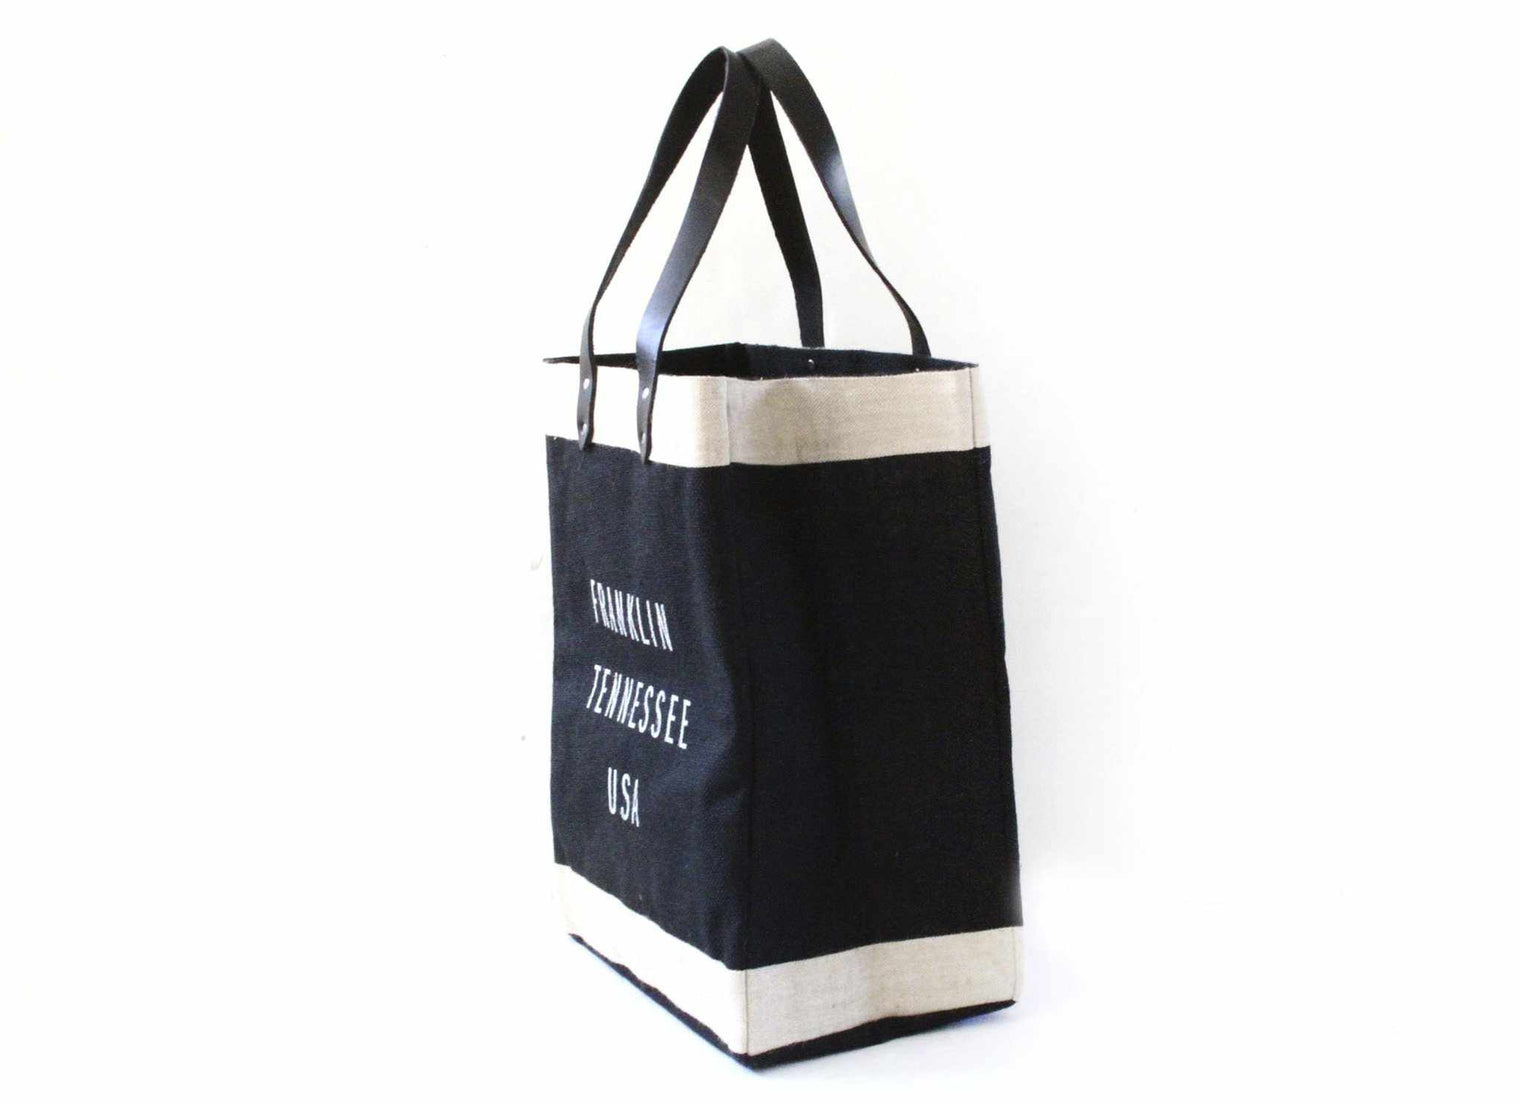 Customize Your Tote Market Bag in Black